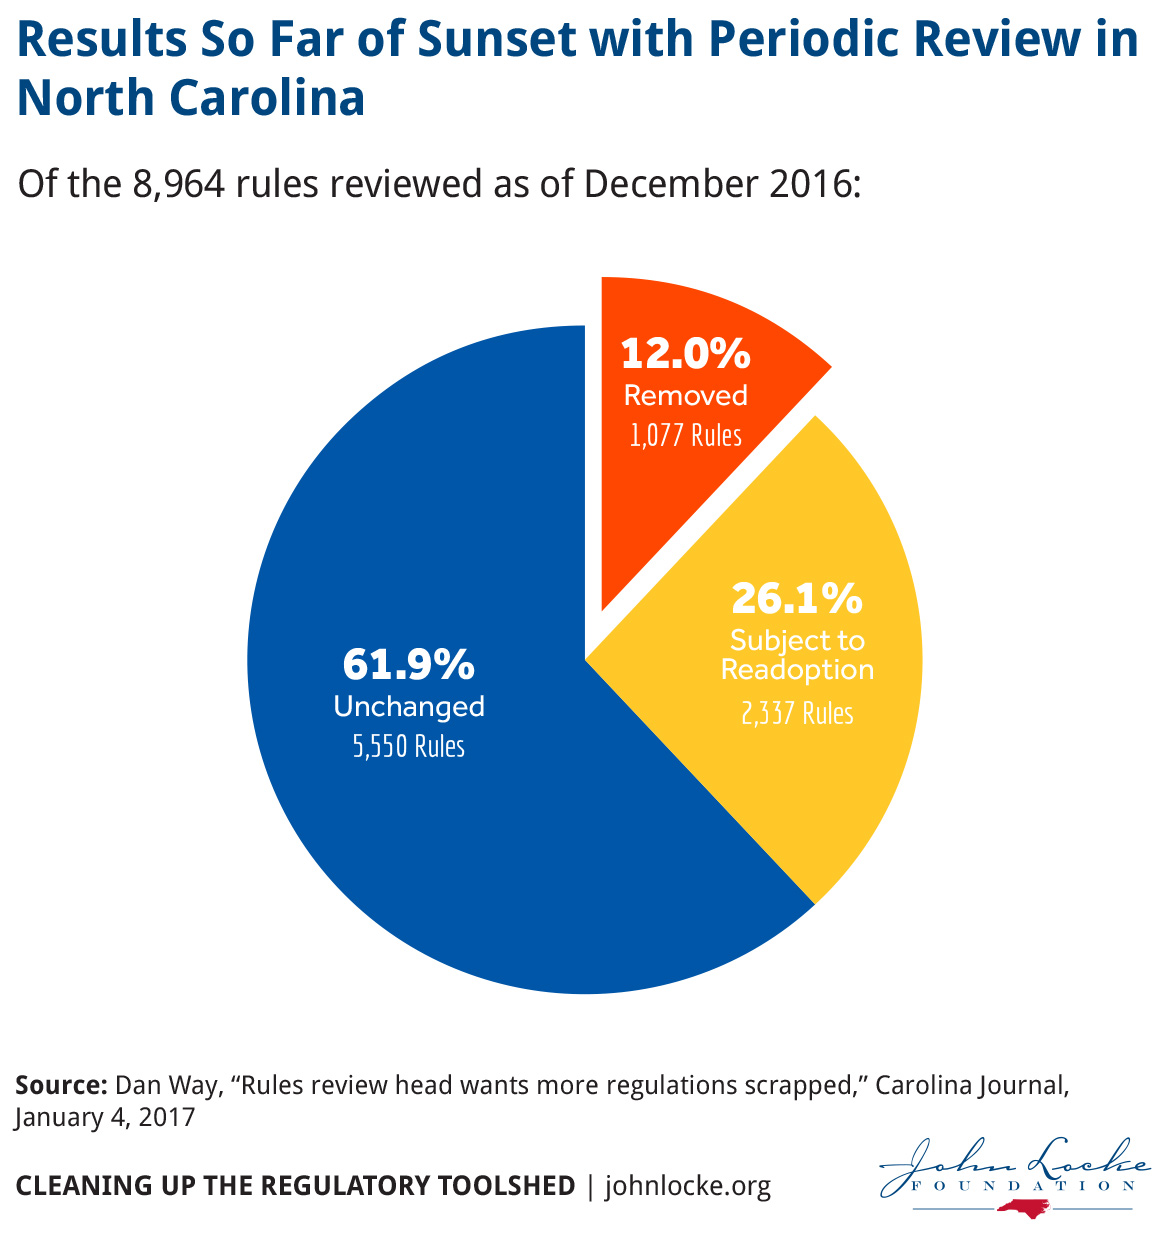 Results So Far of Sunset with Periodic Review in North Carolina